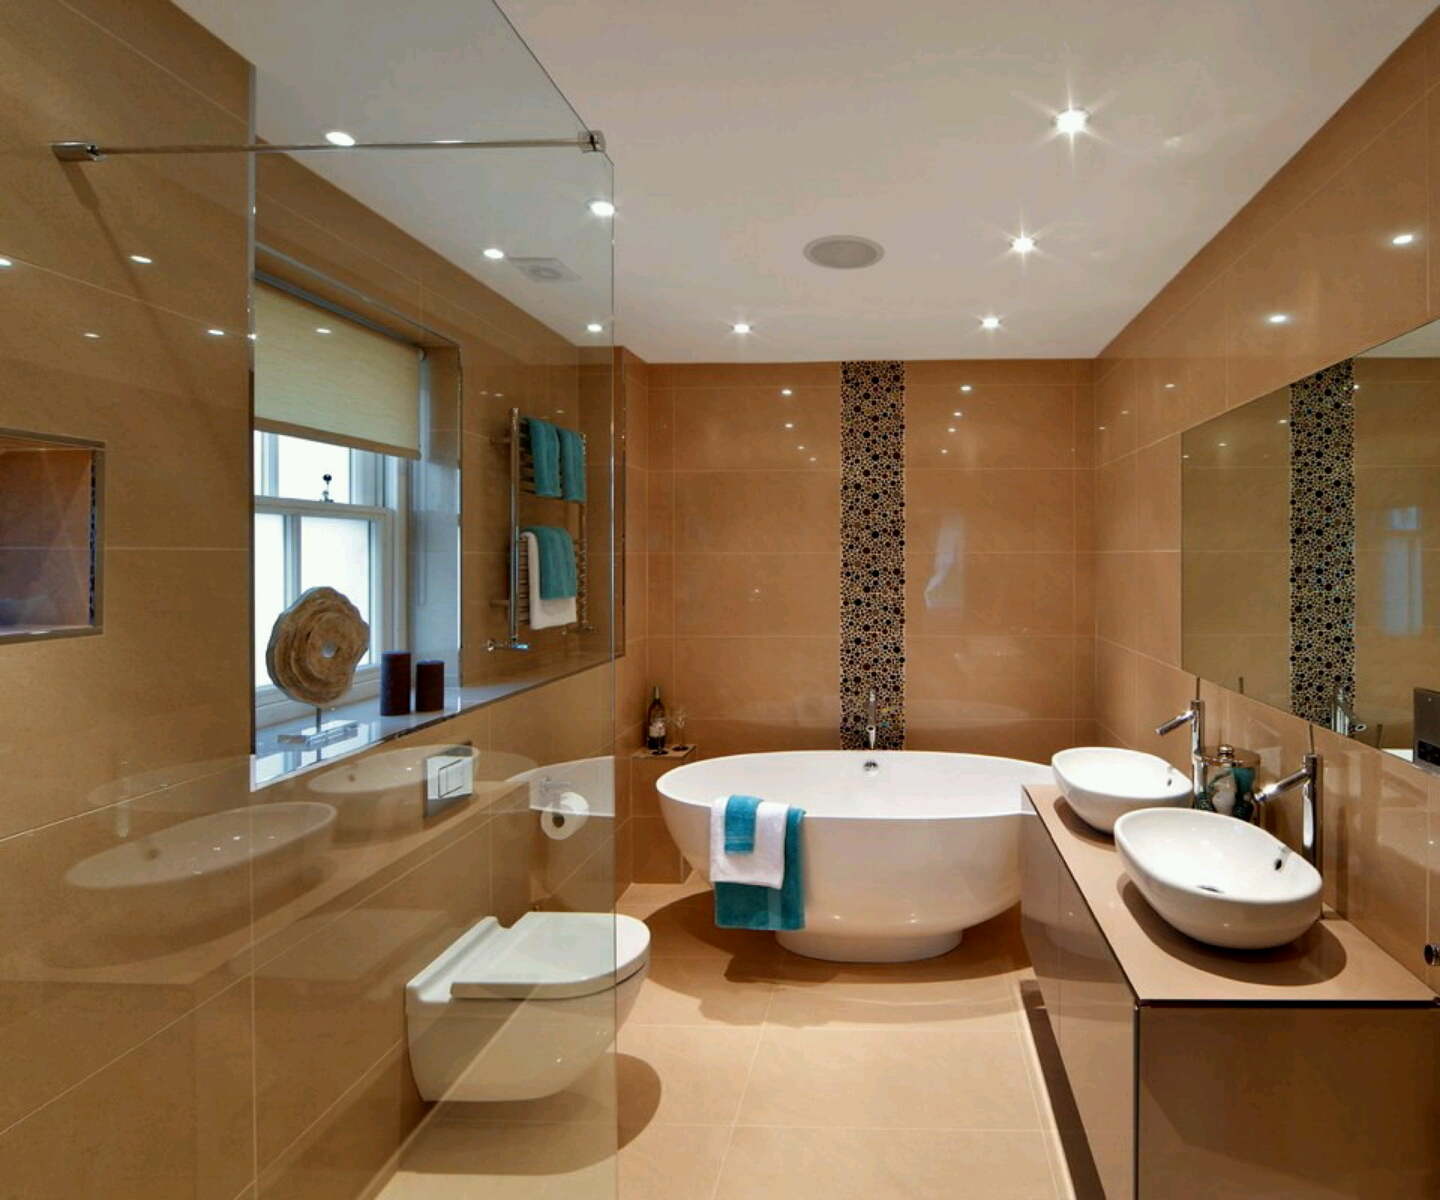 25 small but luxury bathroom design ideas Simple contemporary bathroom design